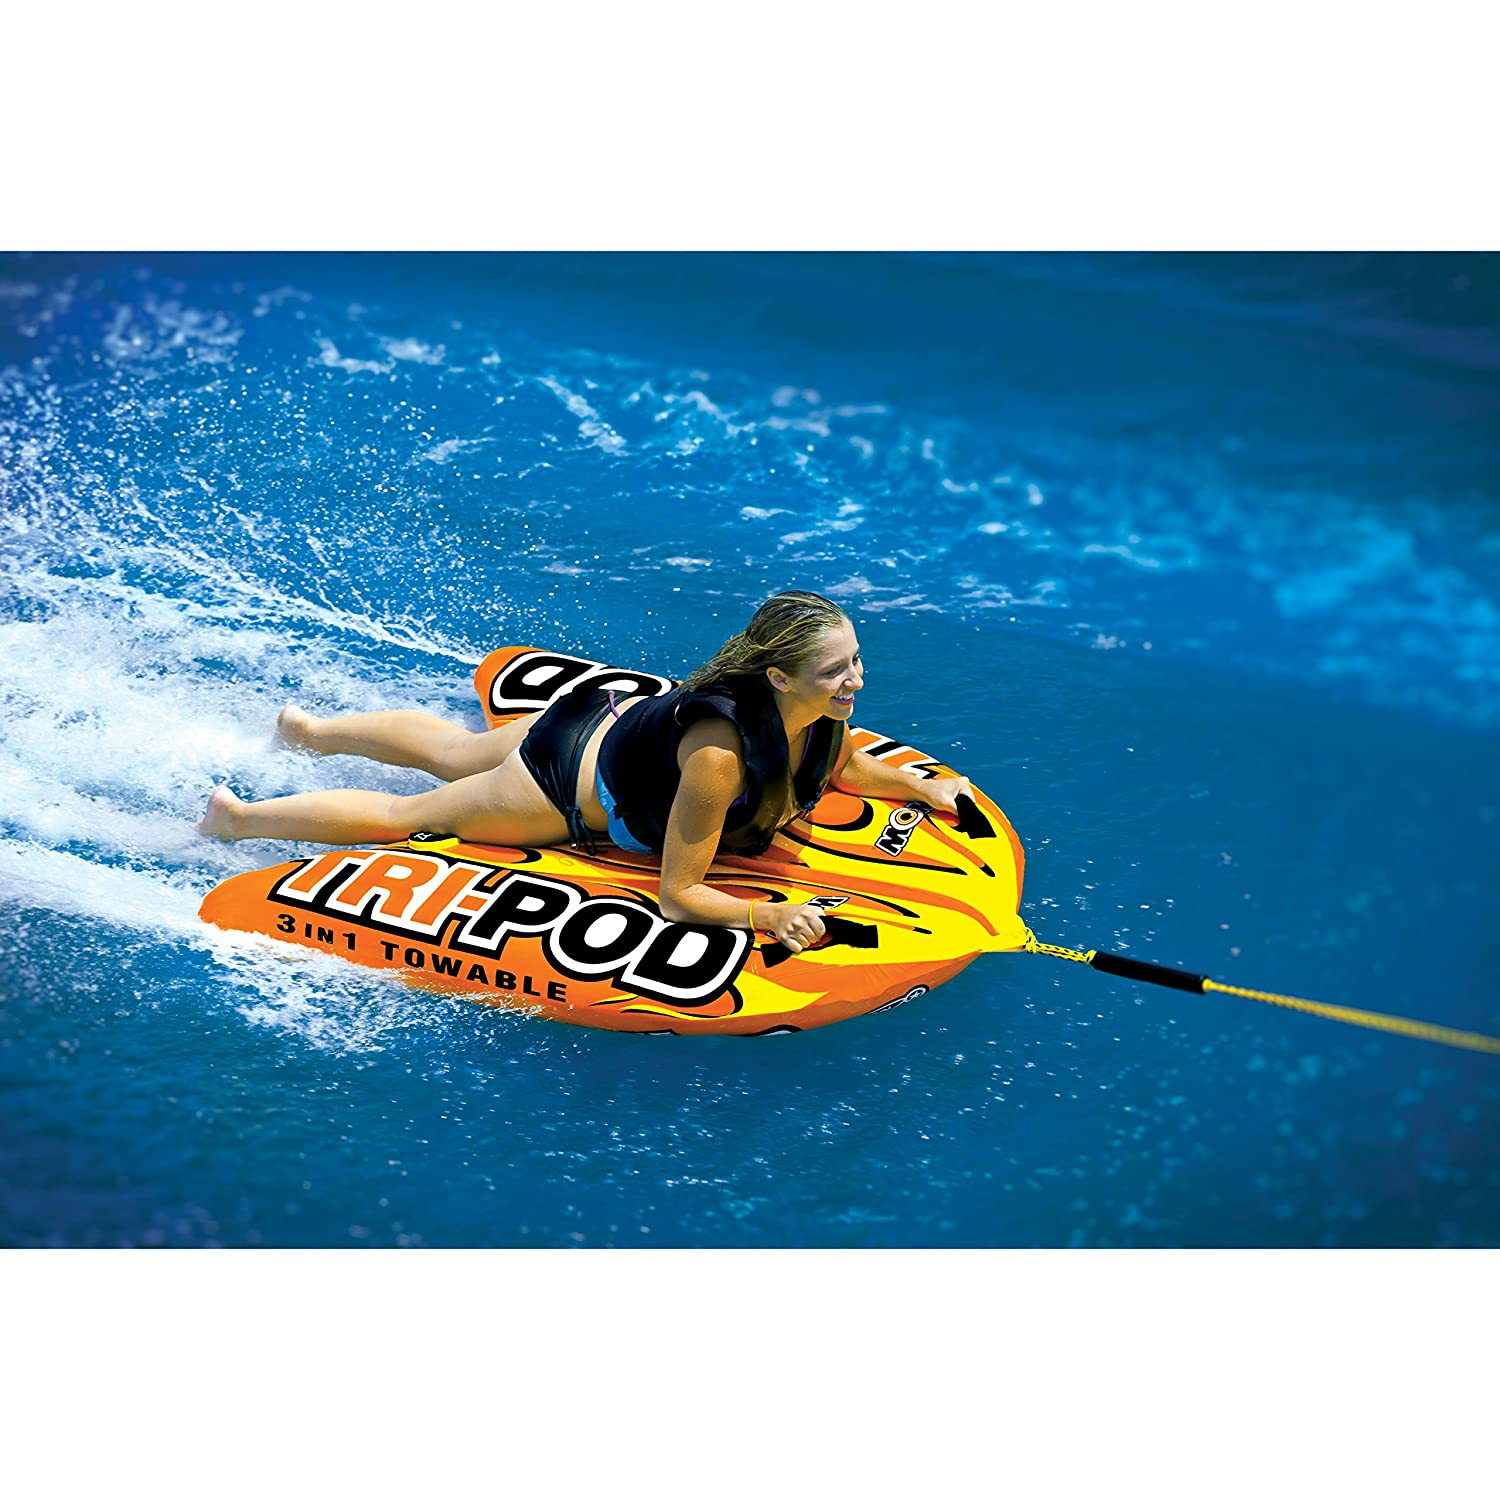 WOW World of Watersports Tri Pod Cockpit or Deck Tube WOW Watersports 13-1020 3 Towables in One